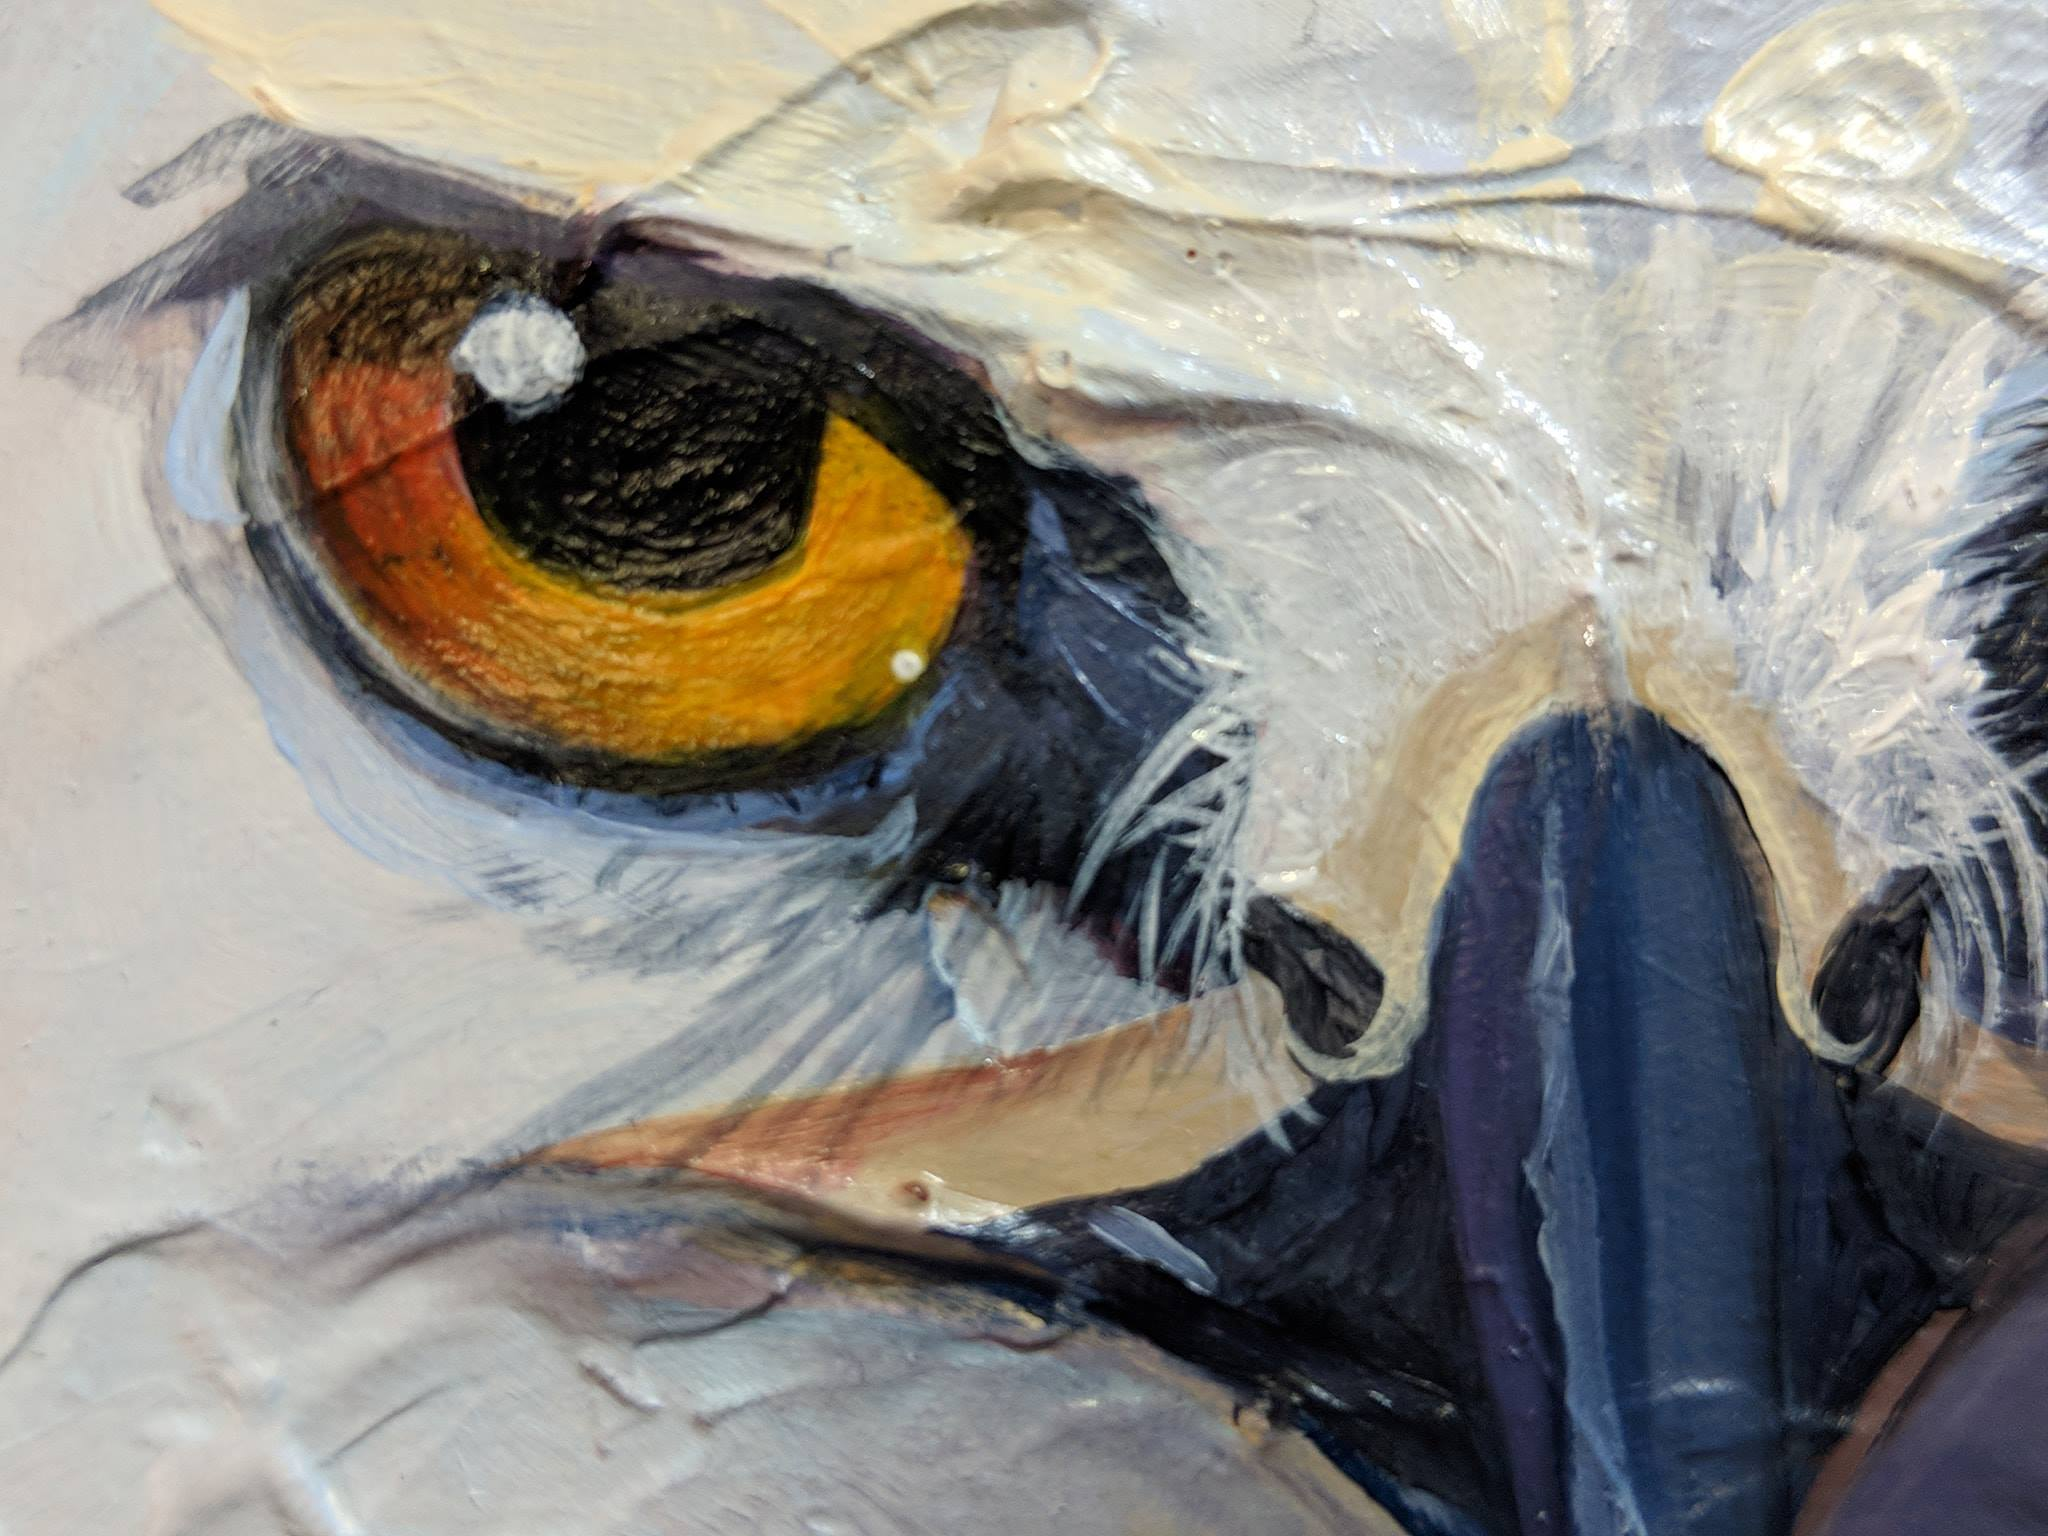 White-tail Kite Oil Painting in Progress - beginning of face details on the bird art